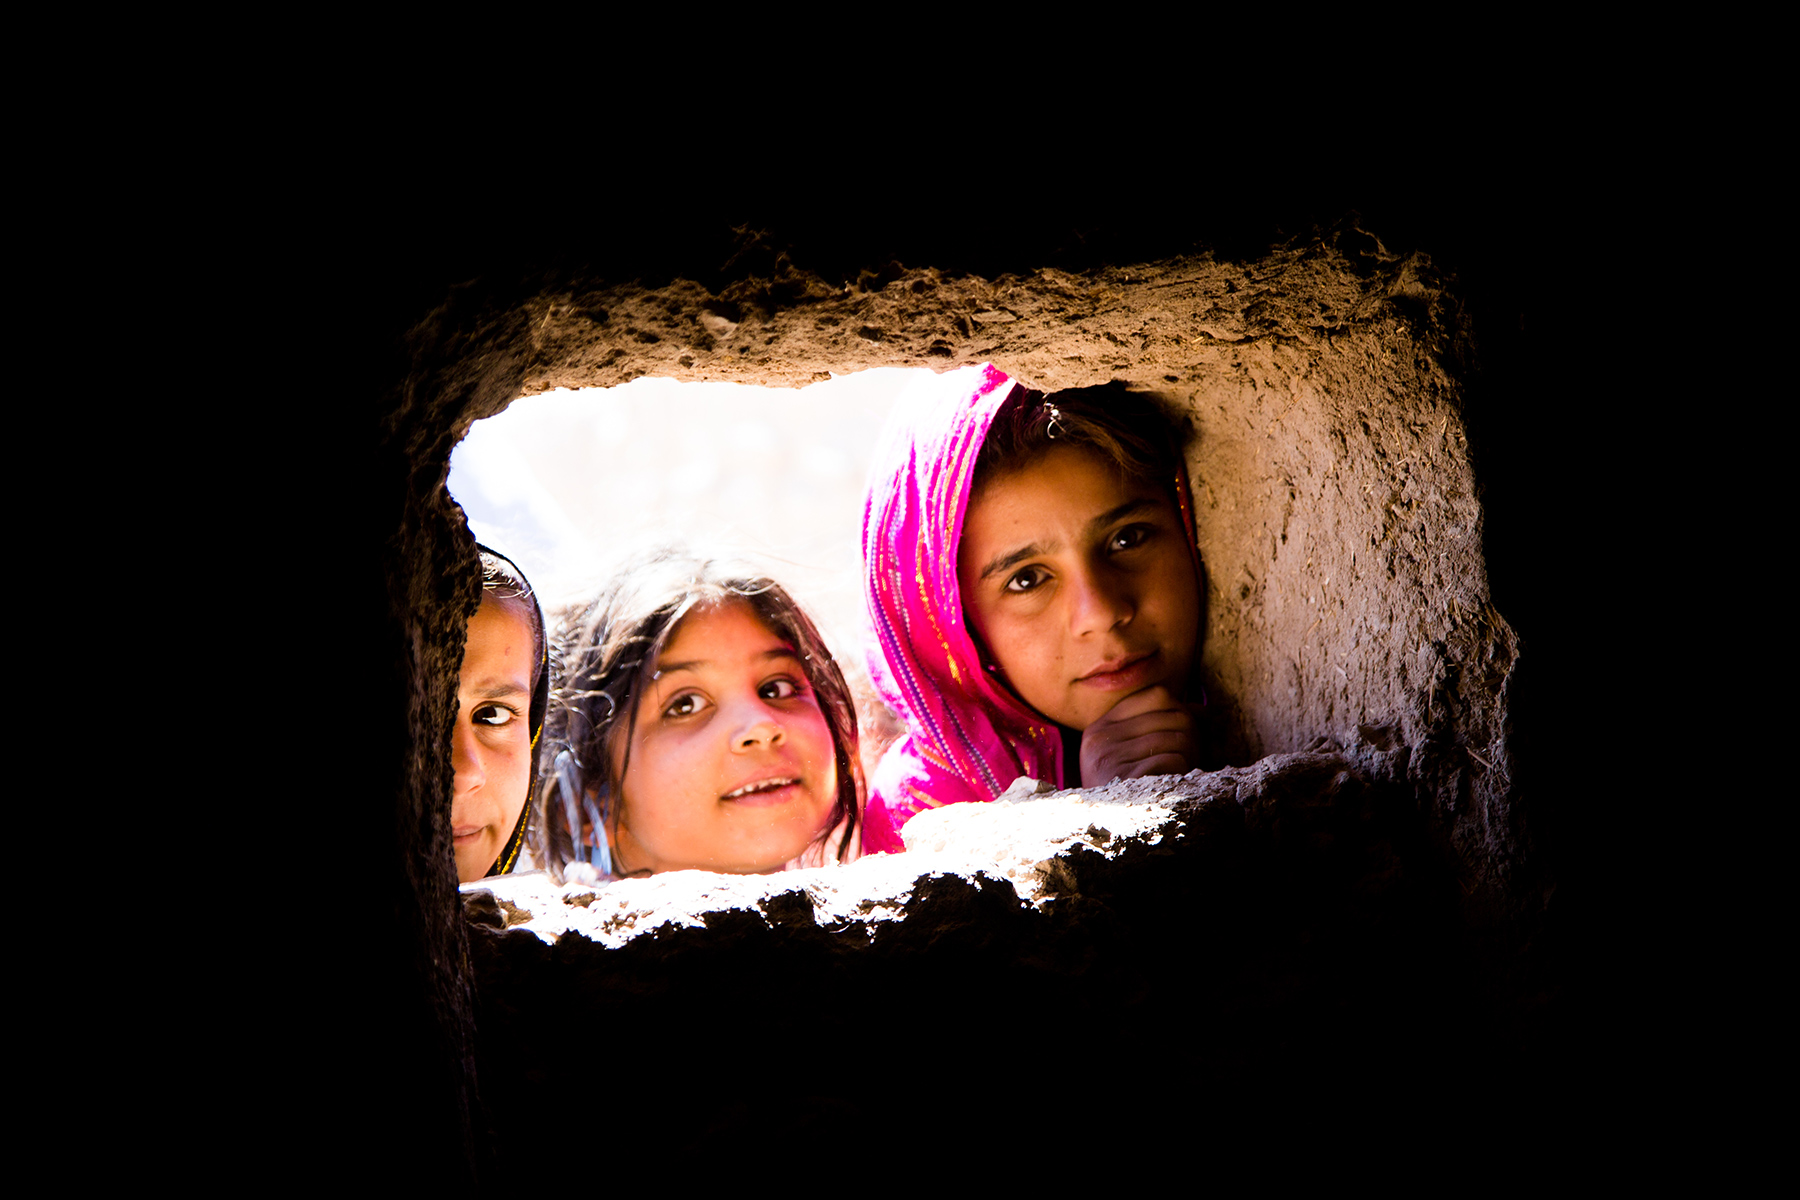 Children in Afghanistan look in a well